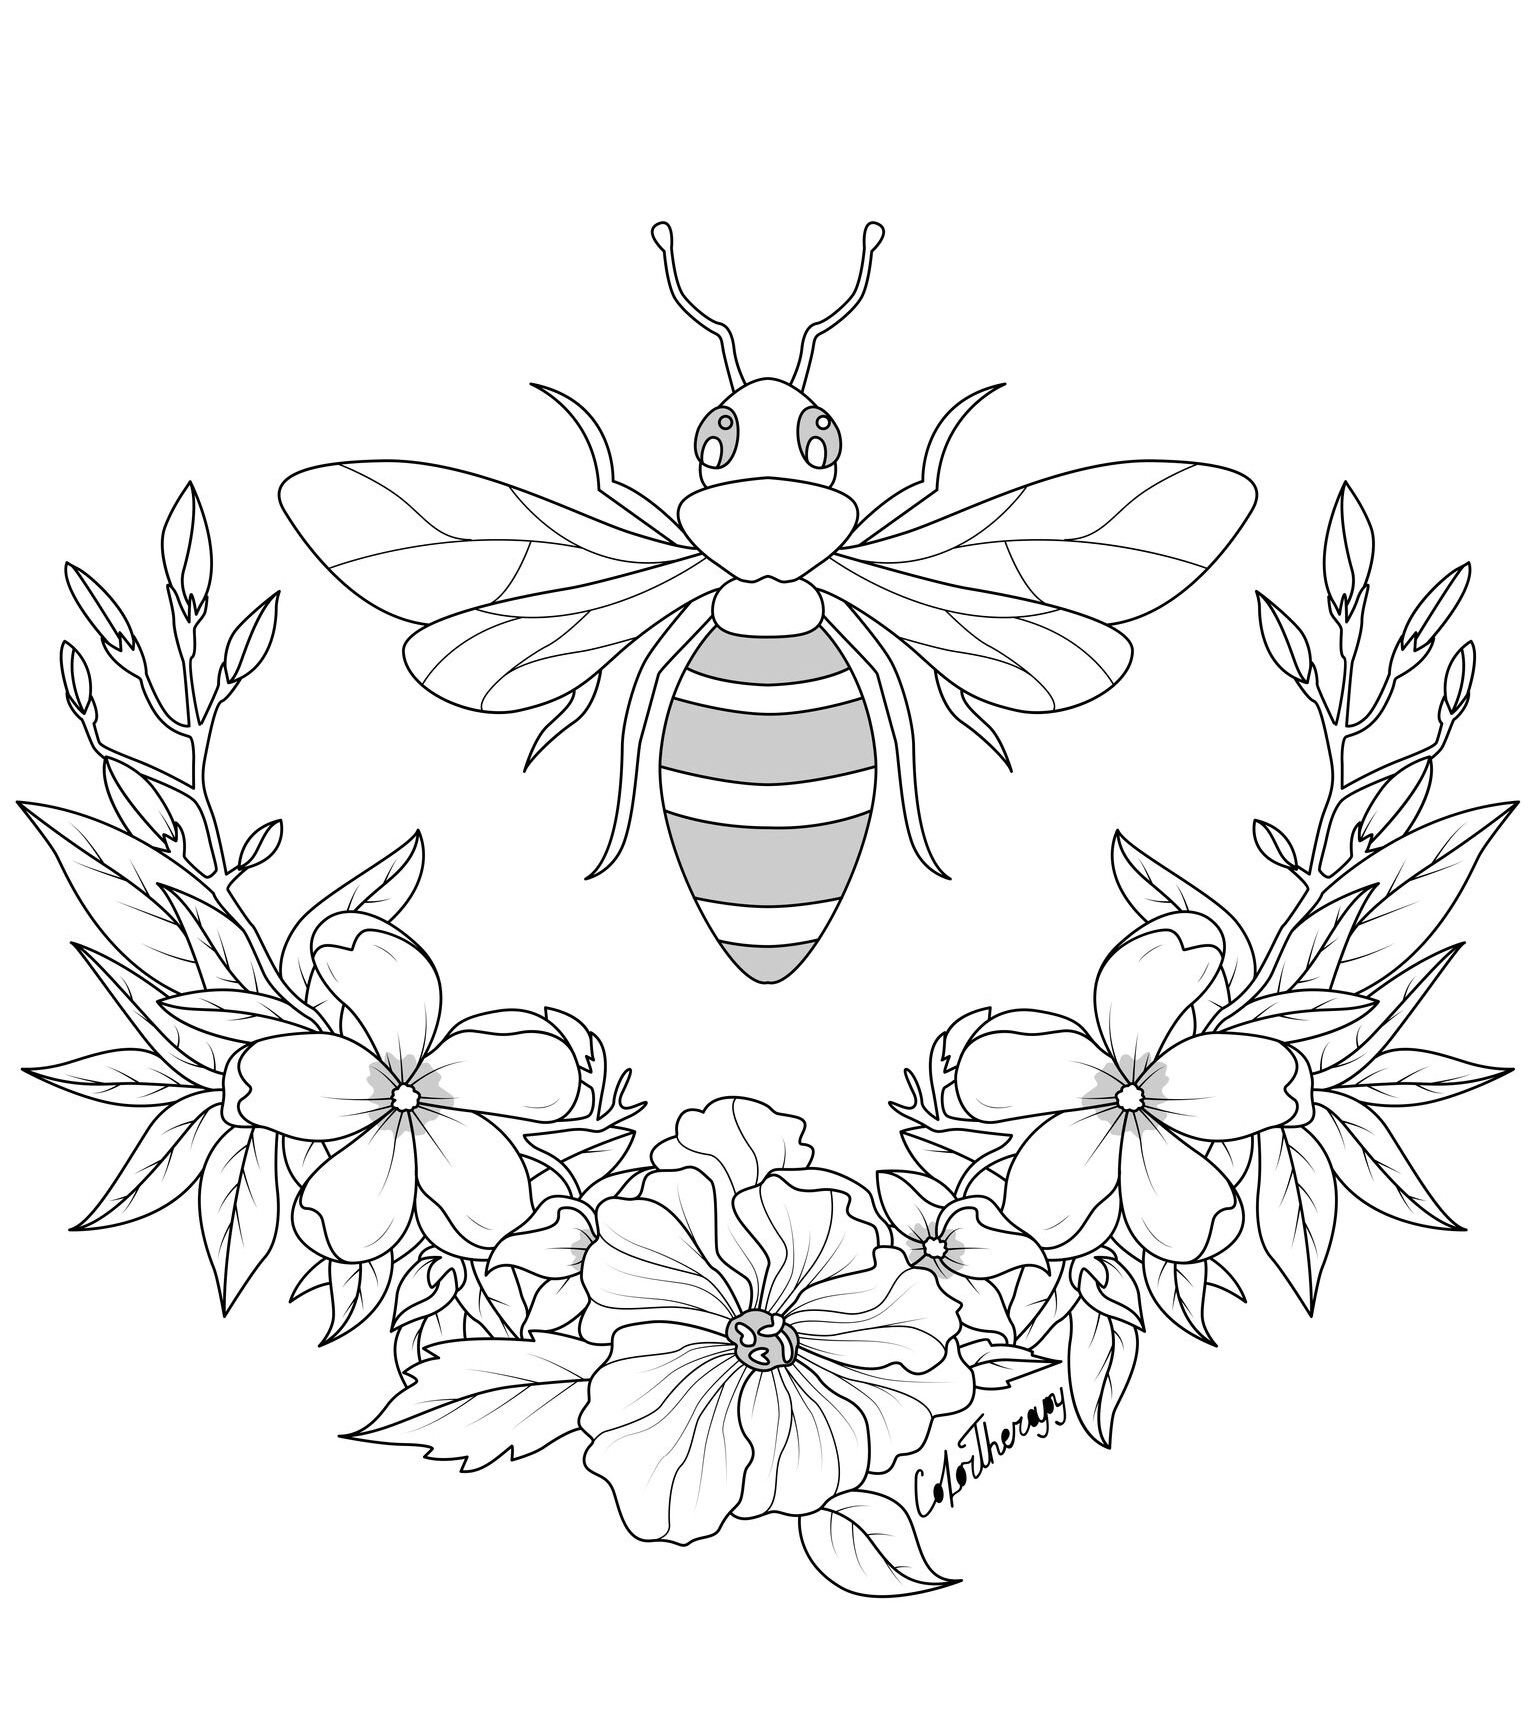 The Sneak Peek For The Next Gift Of The Day Tomorrow Do You Like This One Bee Flowers Bee Coloring Pages Animal Coloring Pages Coloring Pages [ 1712 x 1536 Pixel ]